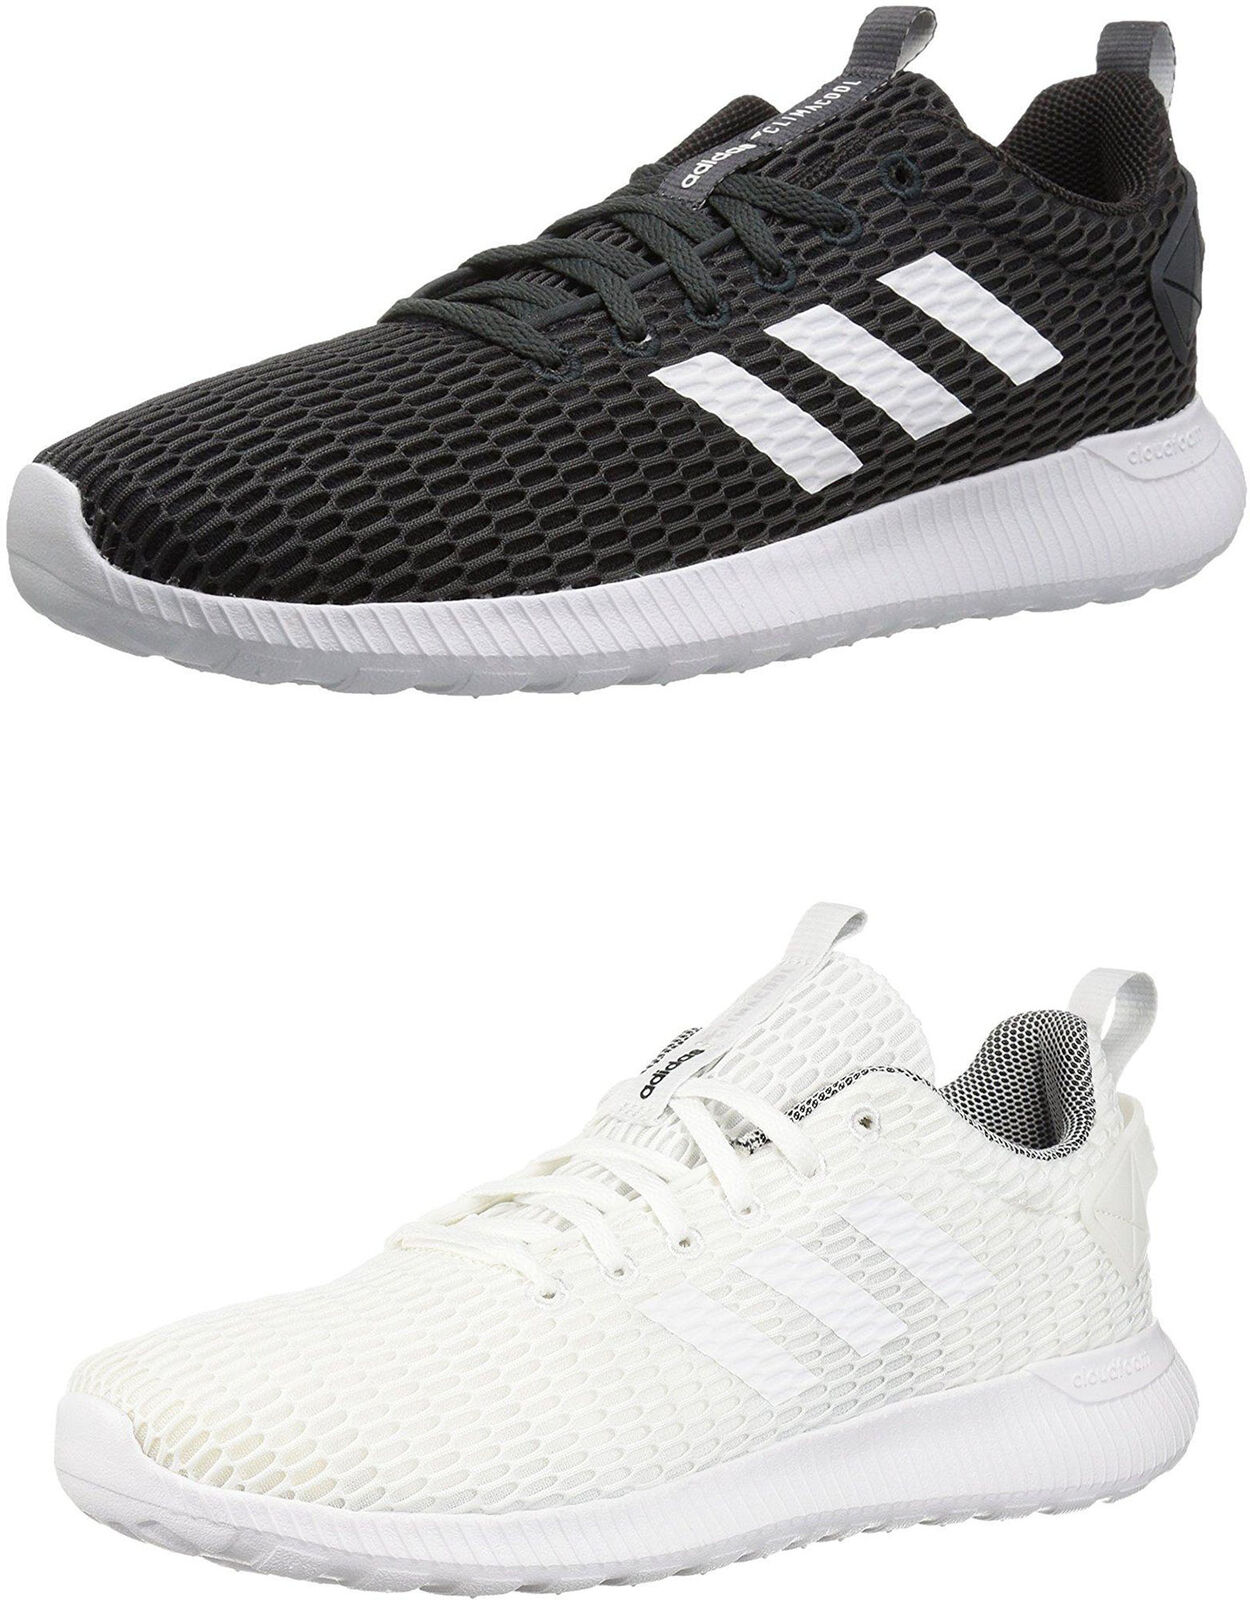 the latest c862c 1f3ac Details about adidas Neo Men's CloudFoam Lite Racer ClimaCool Shoes, 2  Colors